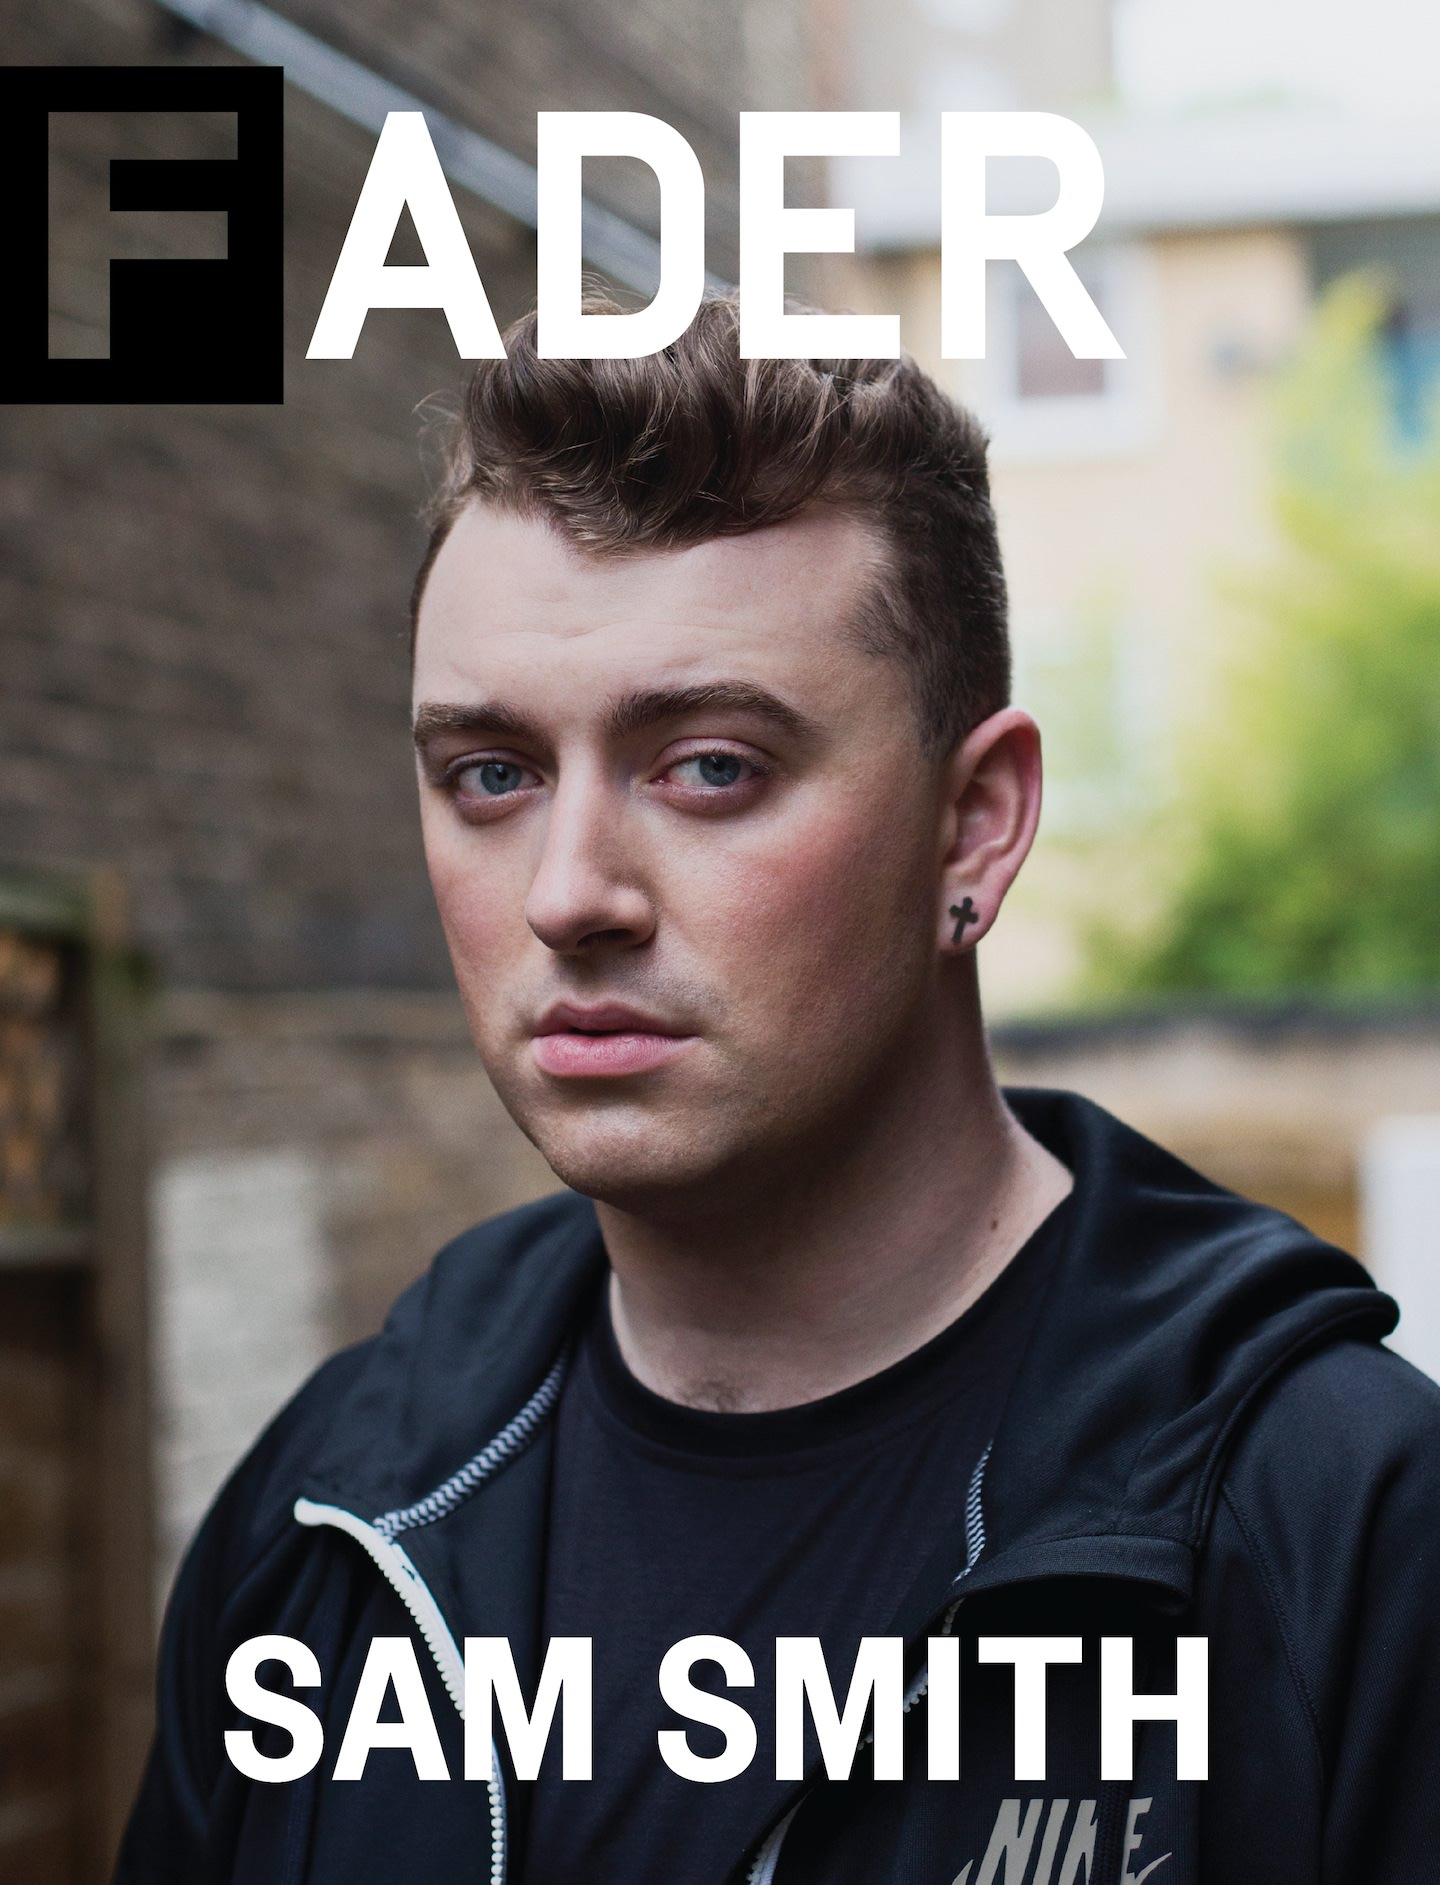 Sam Smith - The FADER